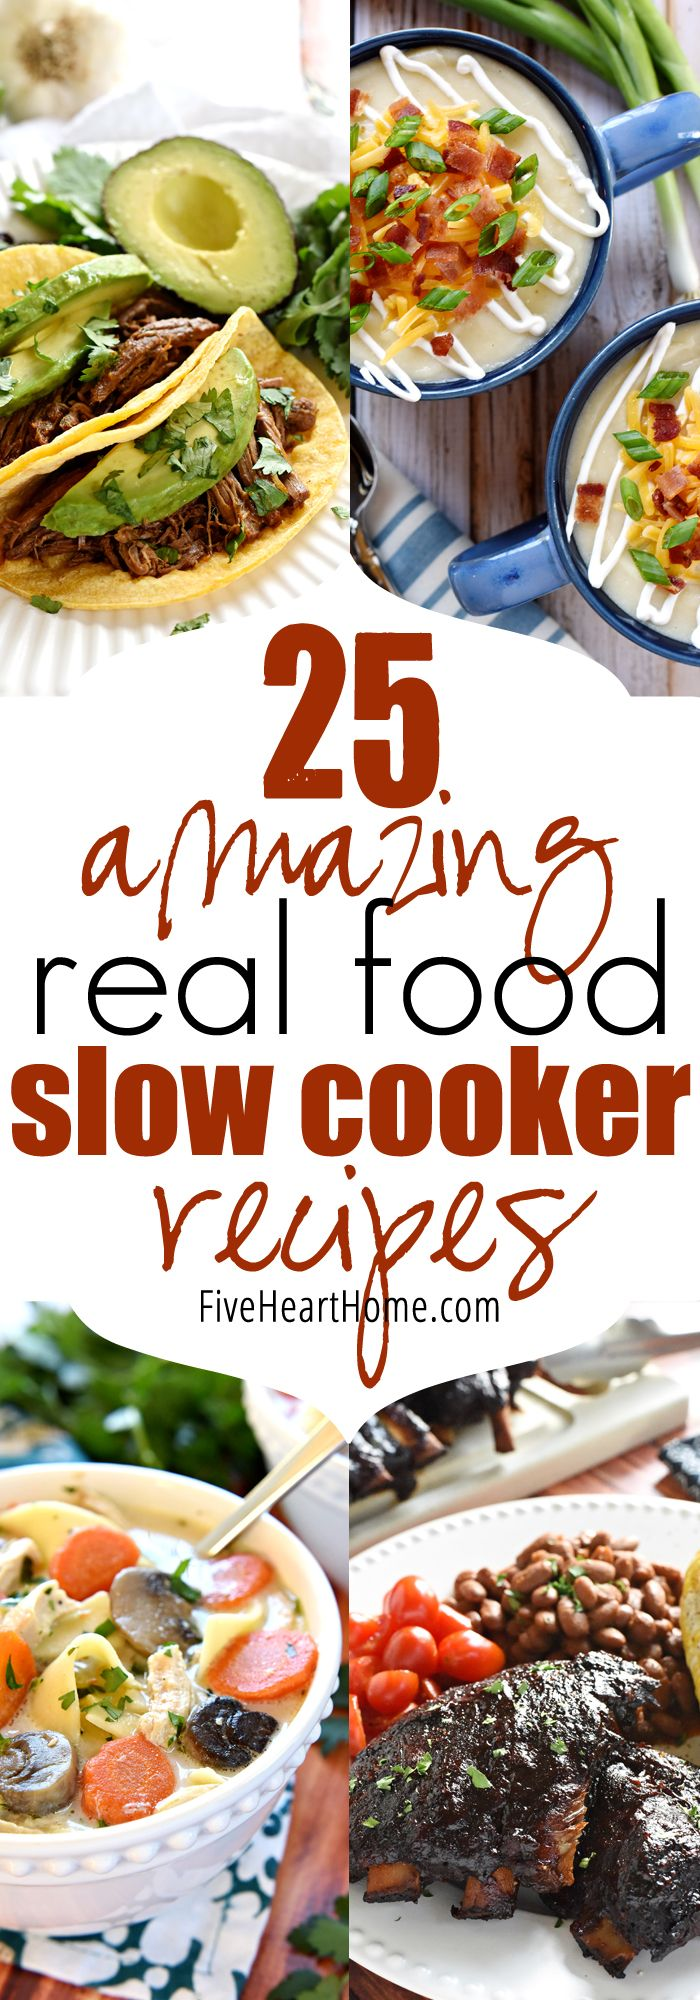 25 Amazing Real Food Slow Cooker Recipes ~ comforting crock pot classics, flavorful tacos, hearty sandwiches, and cozy soups, stews, and chilis make up this list of popular slow cooker recipes!   FiveHeartHome.com